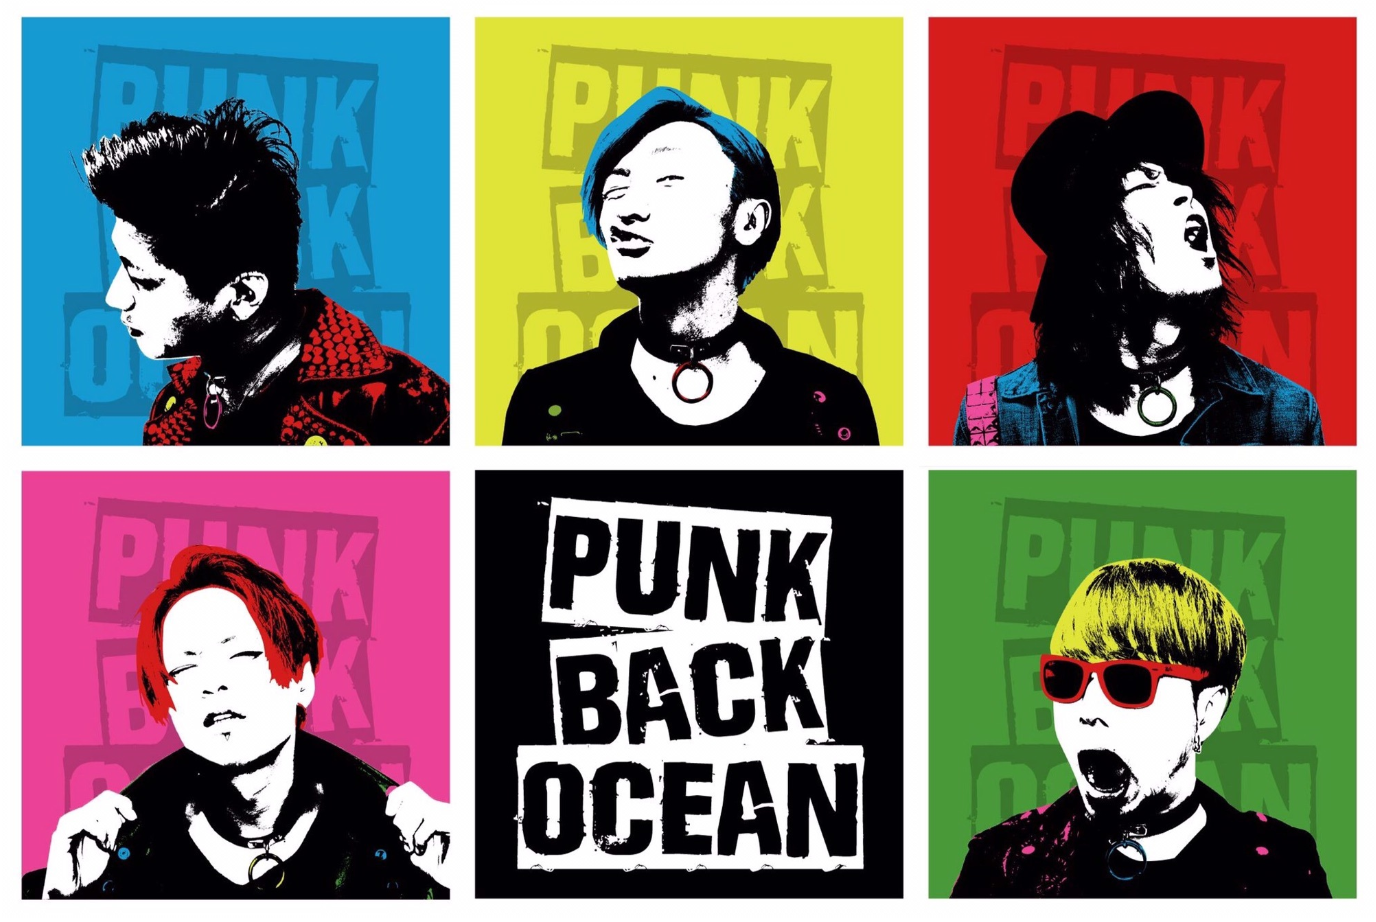 PUNK BACK OCEAN ONE MAN TOUR 追加公演